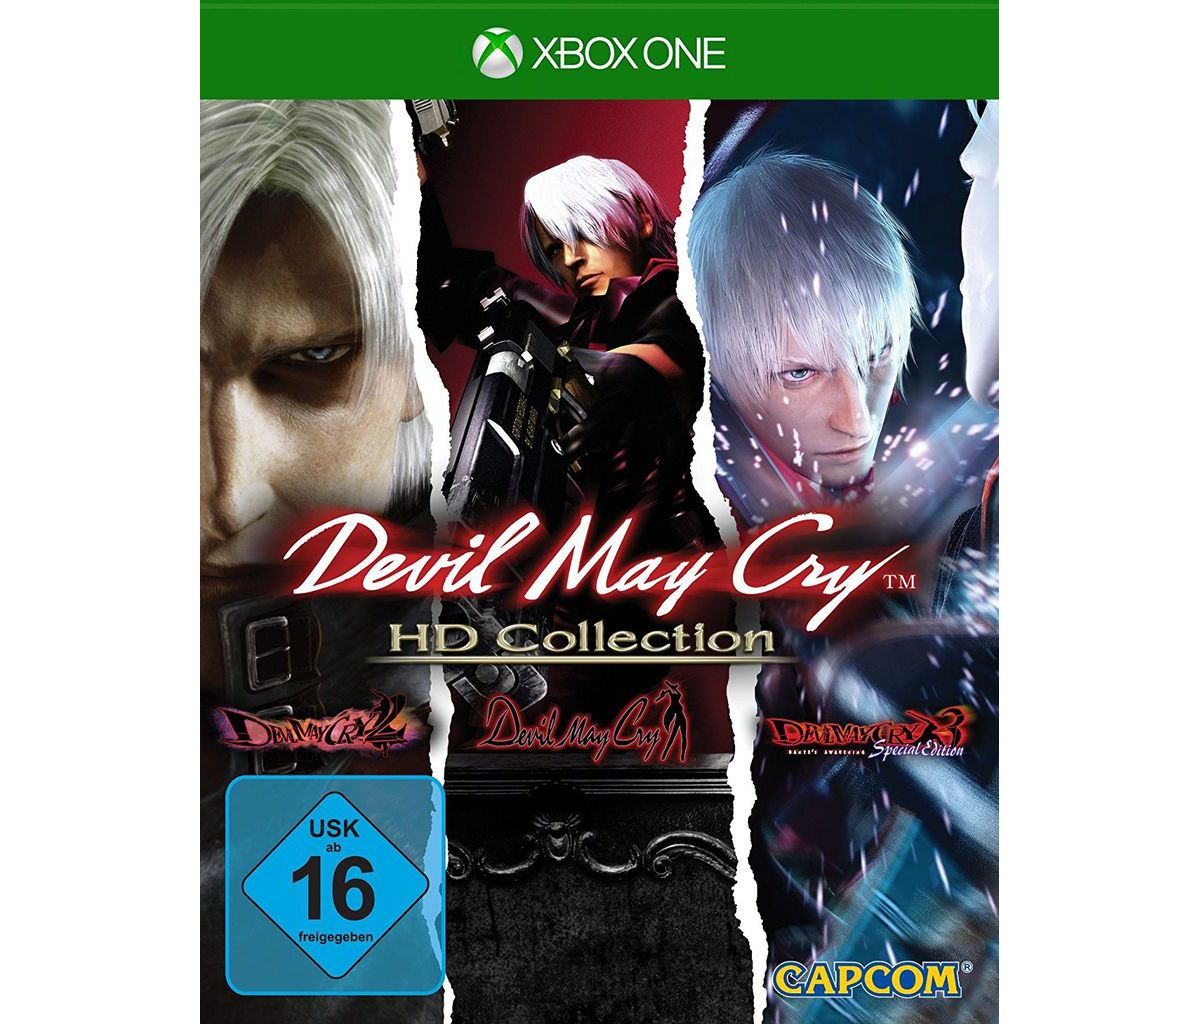 Capcom XBOX One - Spiel »Devil May Cry HD Colle...